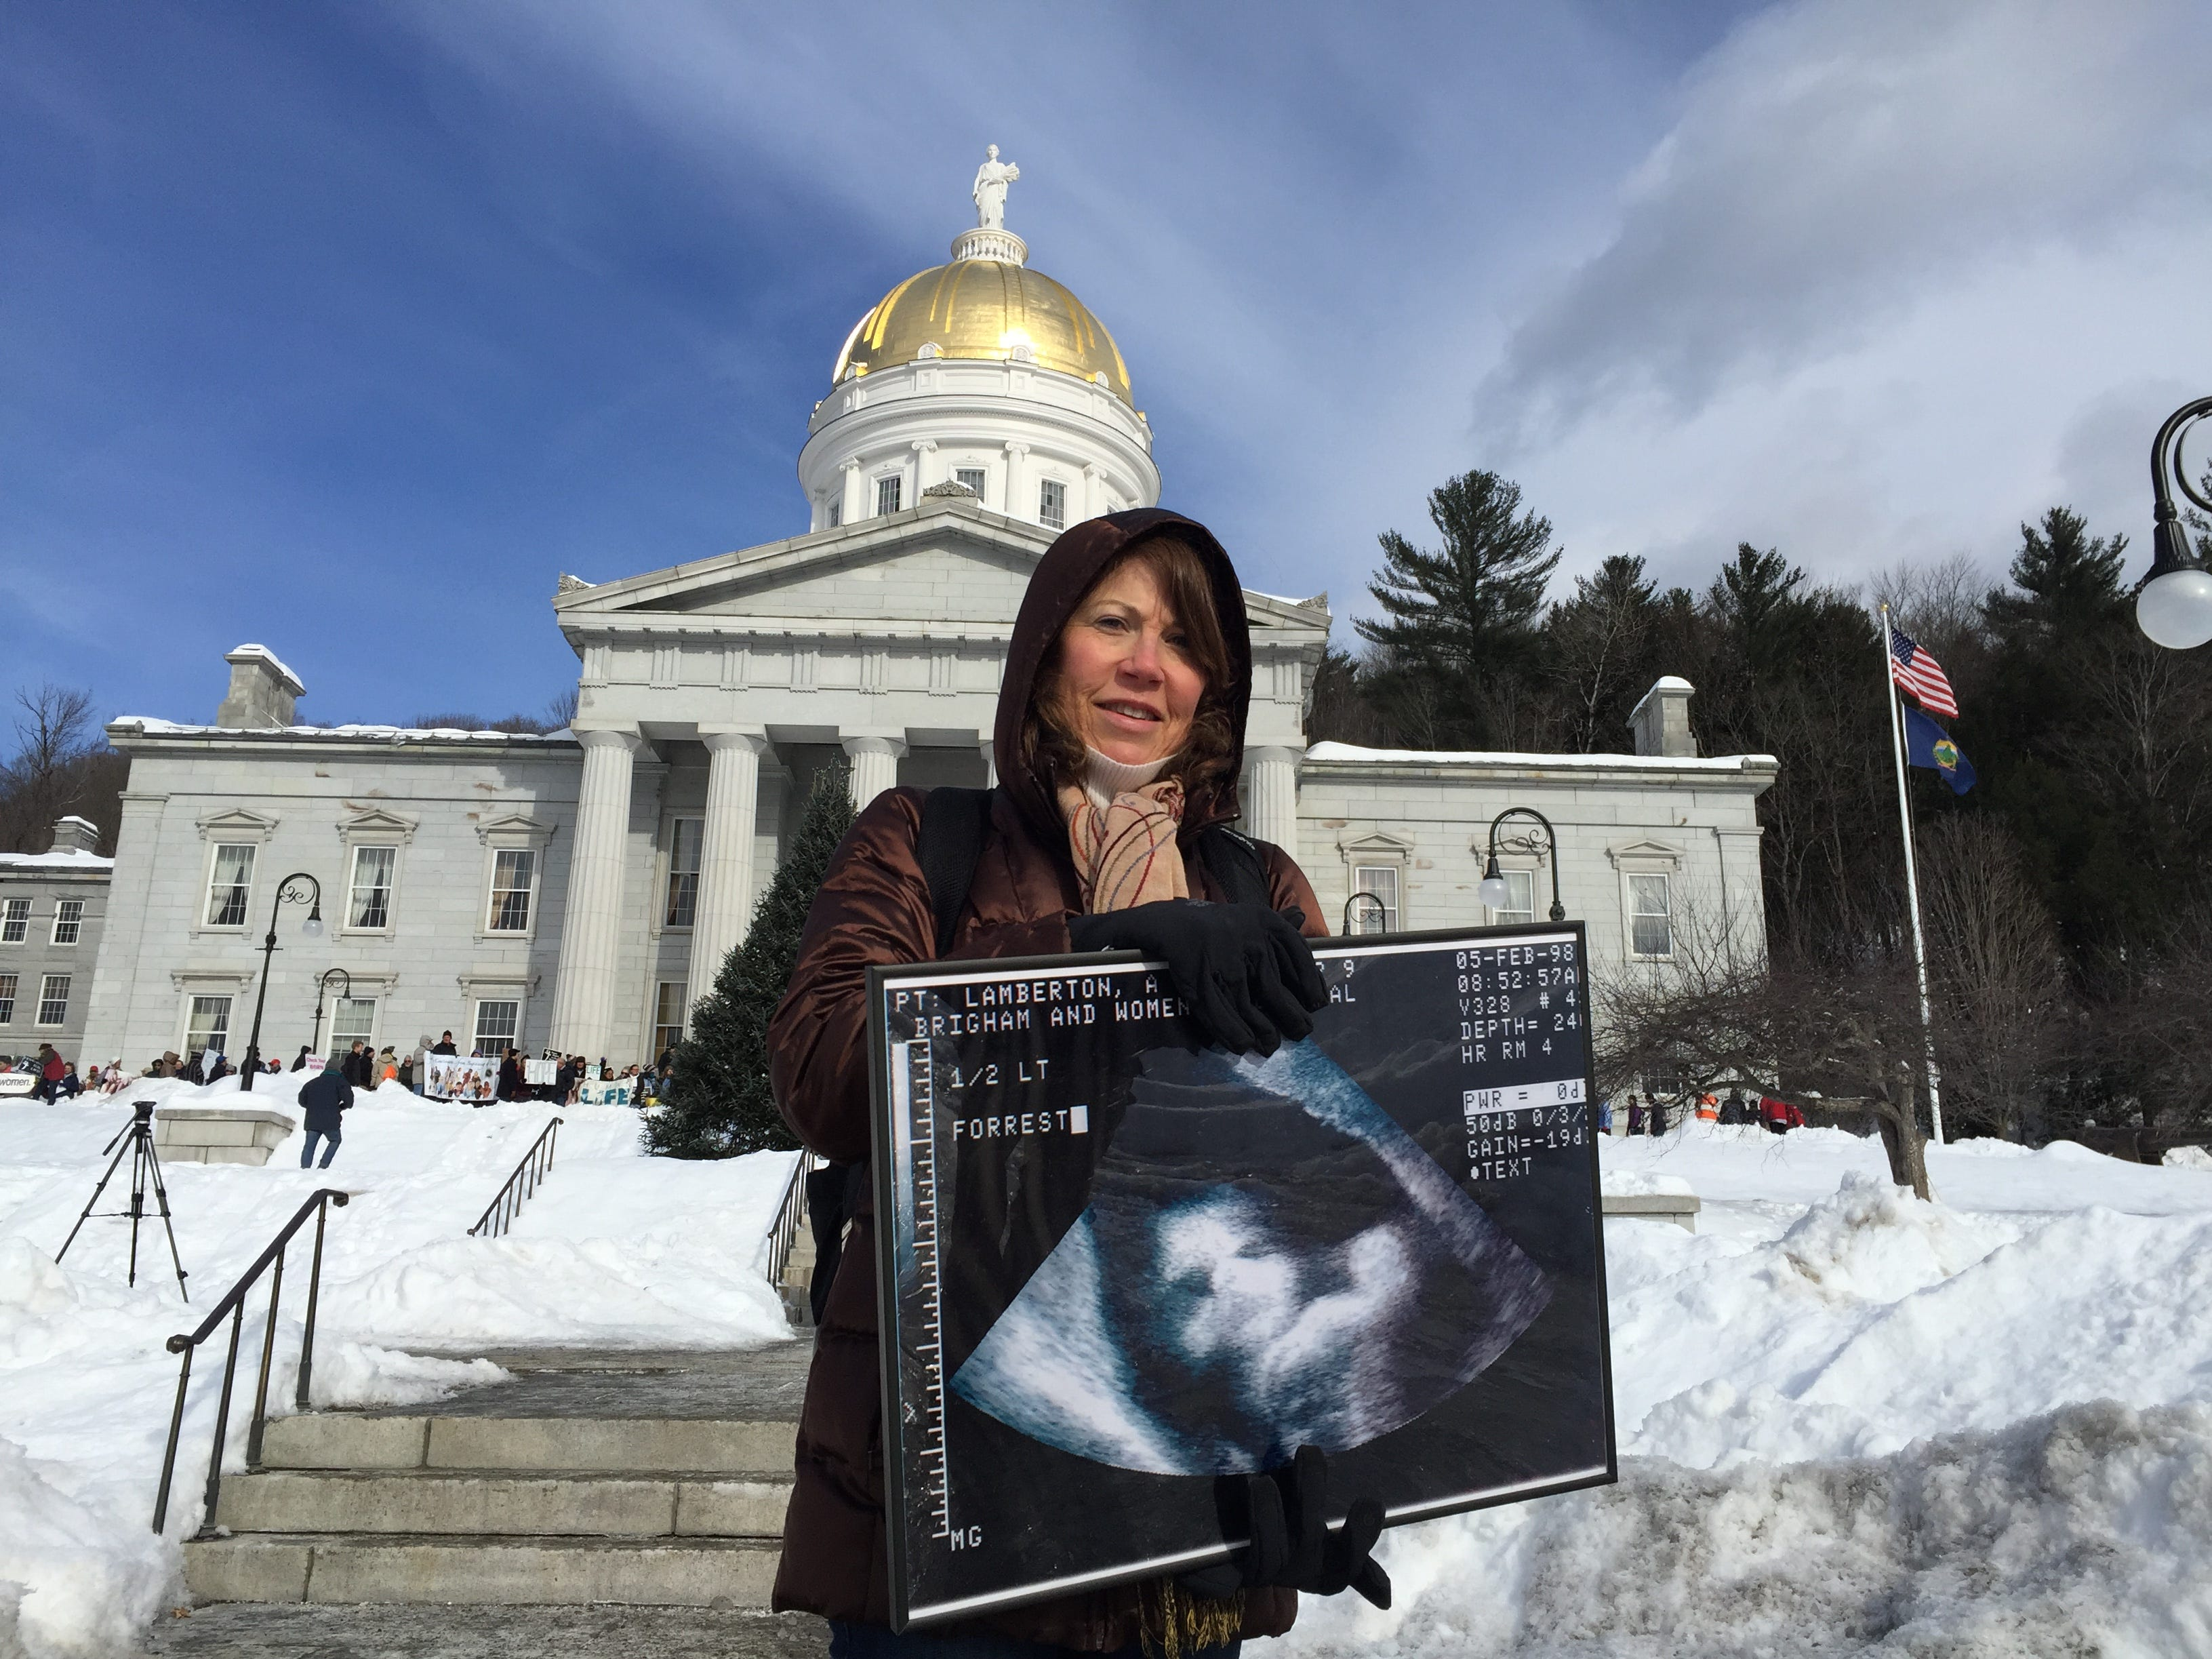 """Annisa Lamberson of Middle Springs carried an ultrasound image of her son, who died six hours after birth.  """"I'm here because of love not hate,"""" Lamberson said on Jan. 26, 2019 at an anti-abortion rally."""